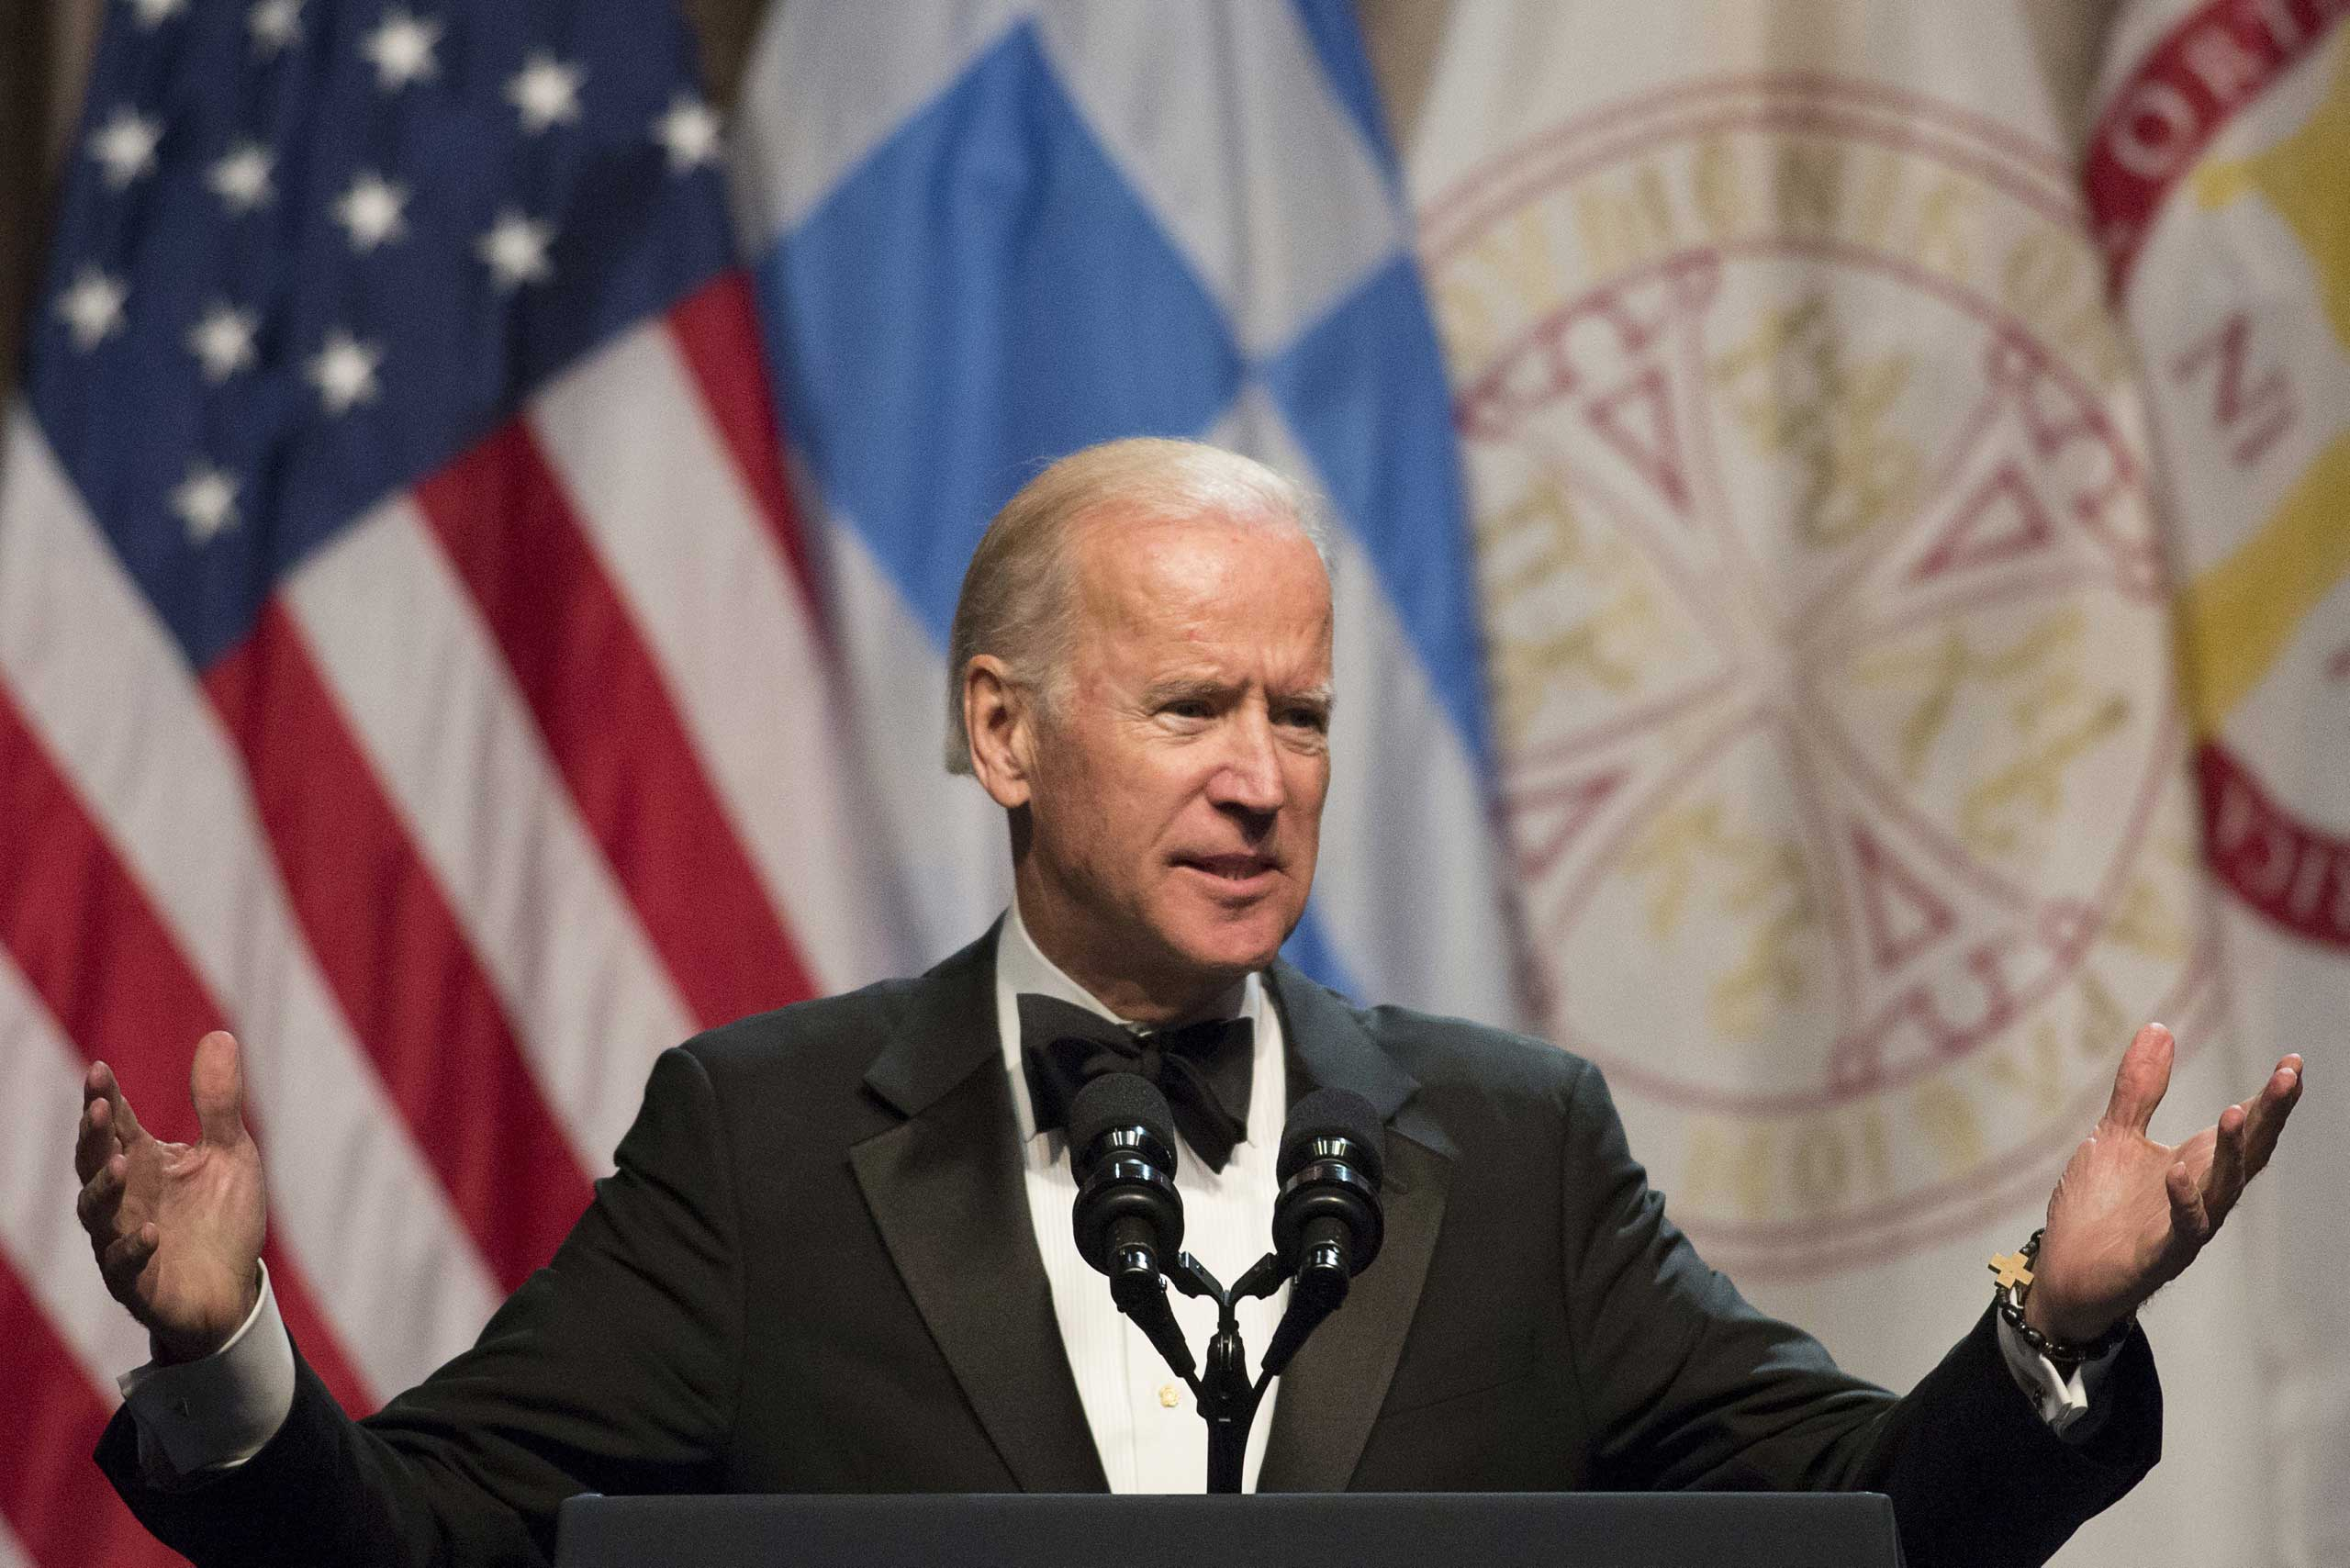 U.S. Vice President Joe Biden speaks after receiving the Athenagoras Human Rights Award from the Order of St. Andrew, Archons of the Ecumenical Patriarchate, in New York City on Oct. 17, 2015